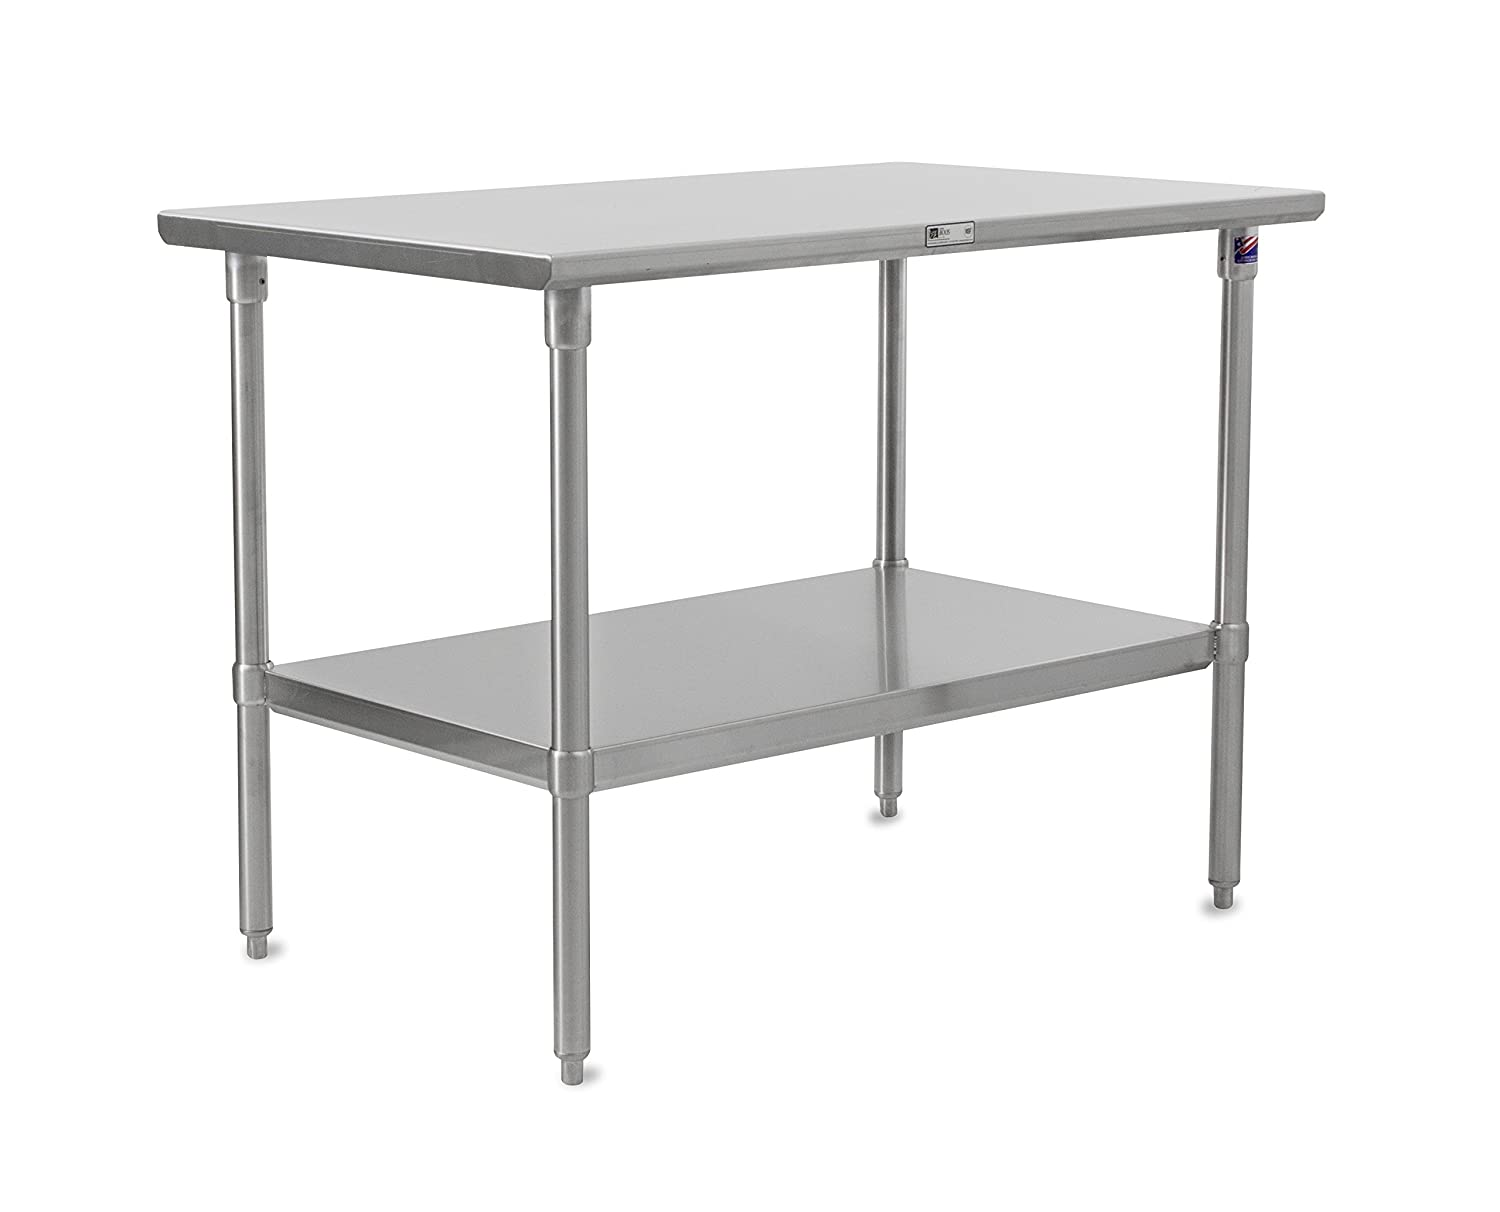 John Boos Stallion ST6-2430SSK Stainless Steel Flat Top Work Table with Adjustable Stainless Steel Lower Shelf and Legs, 30